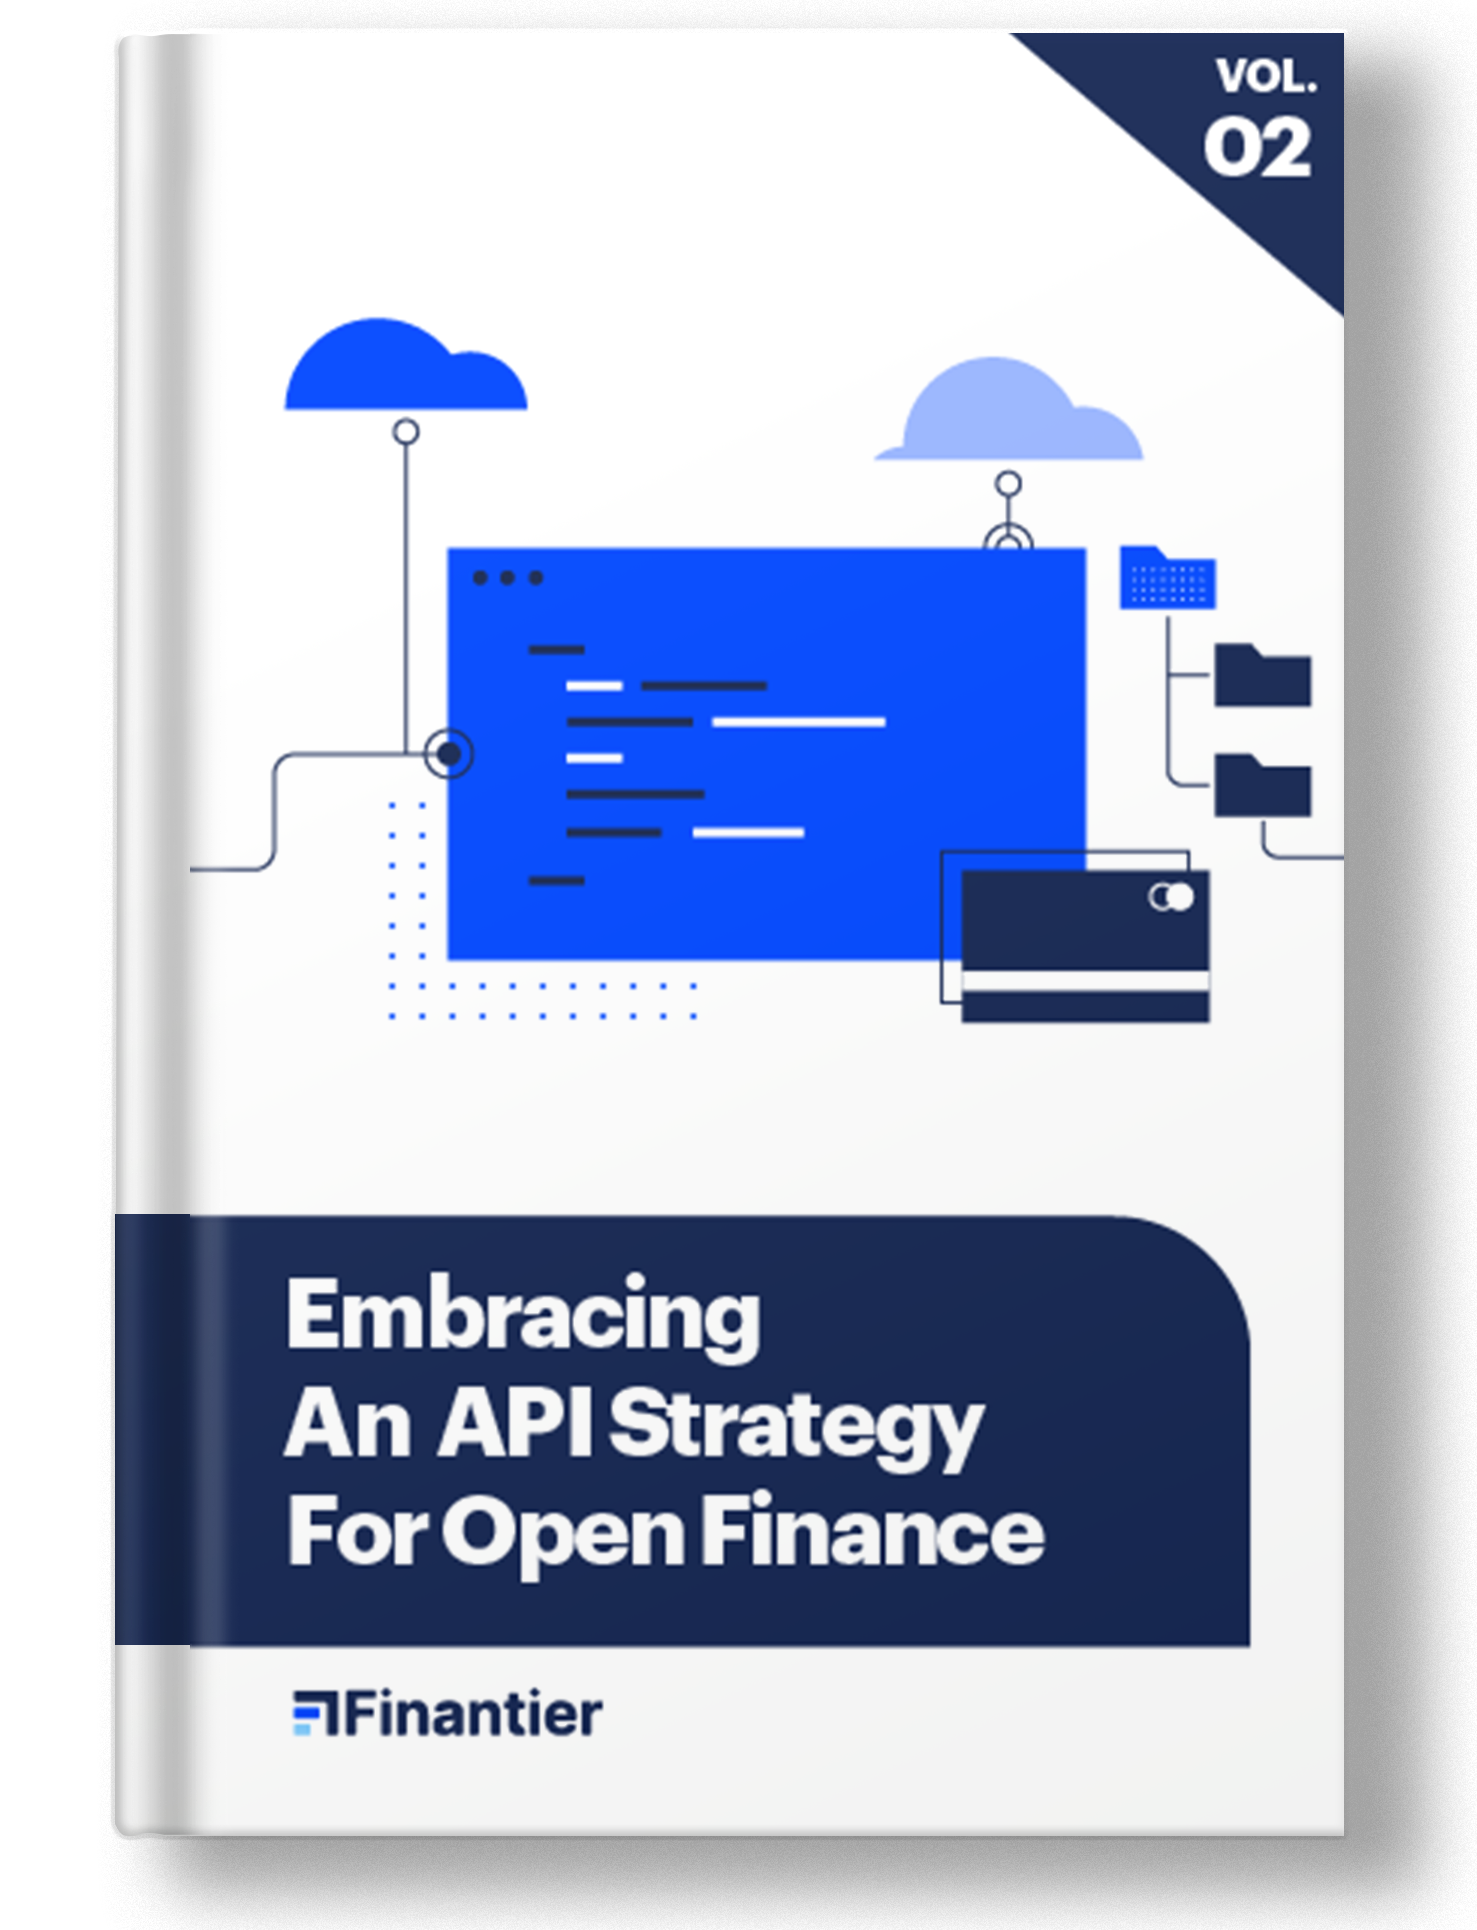 Embracing an API Strategy for Open Finance